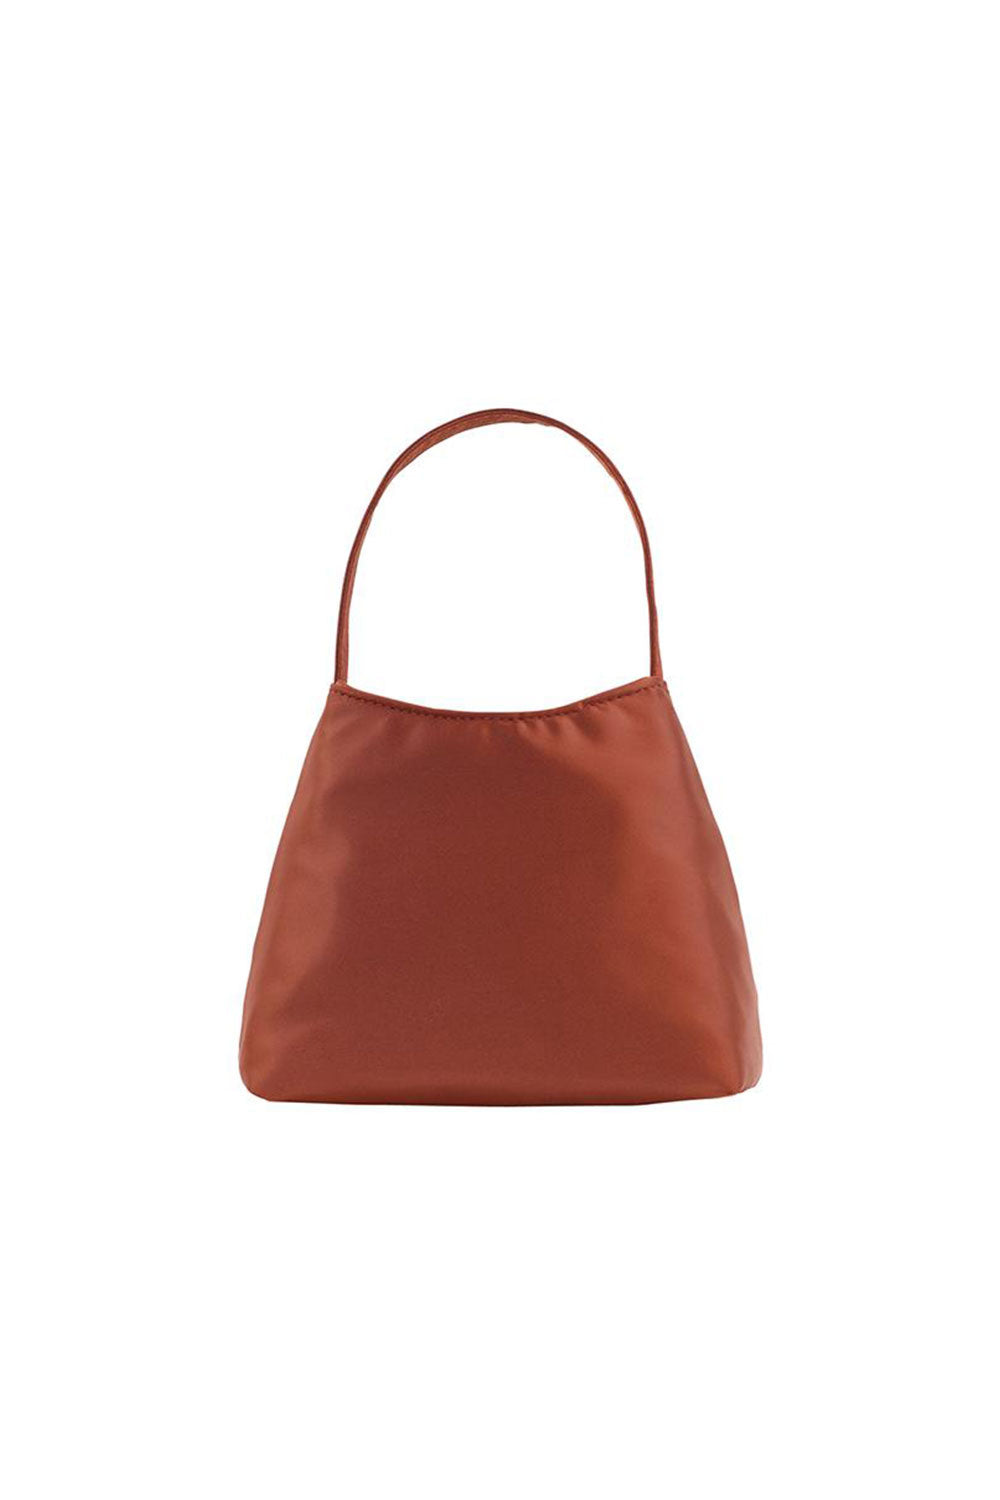 THE MINI CHLOE SATIN | DESERT RED